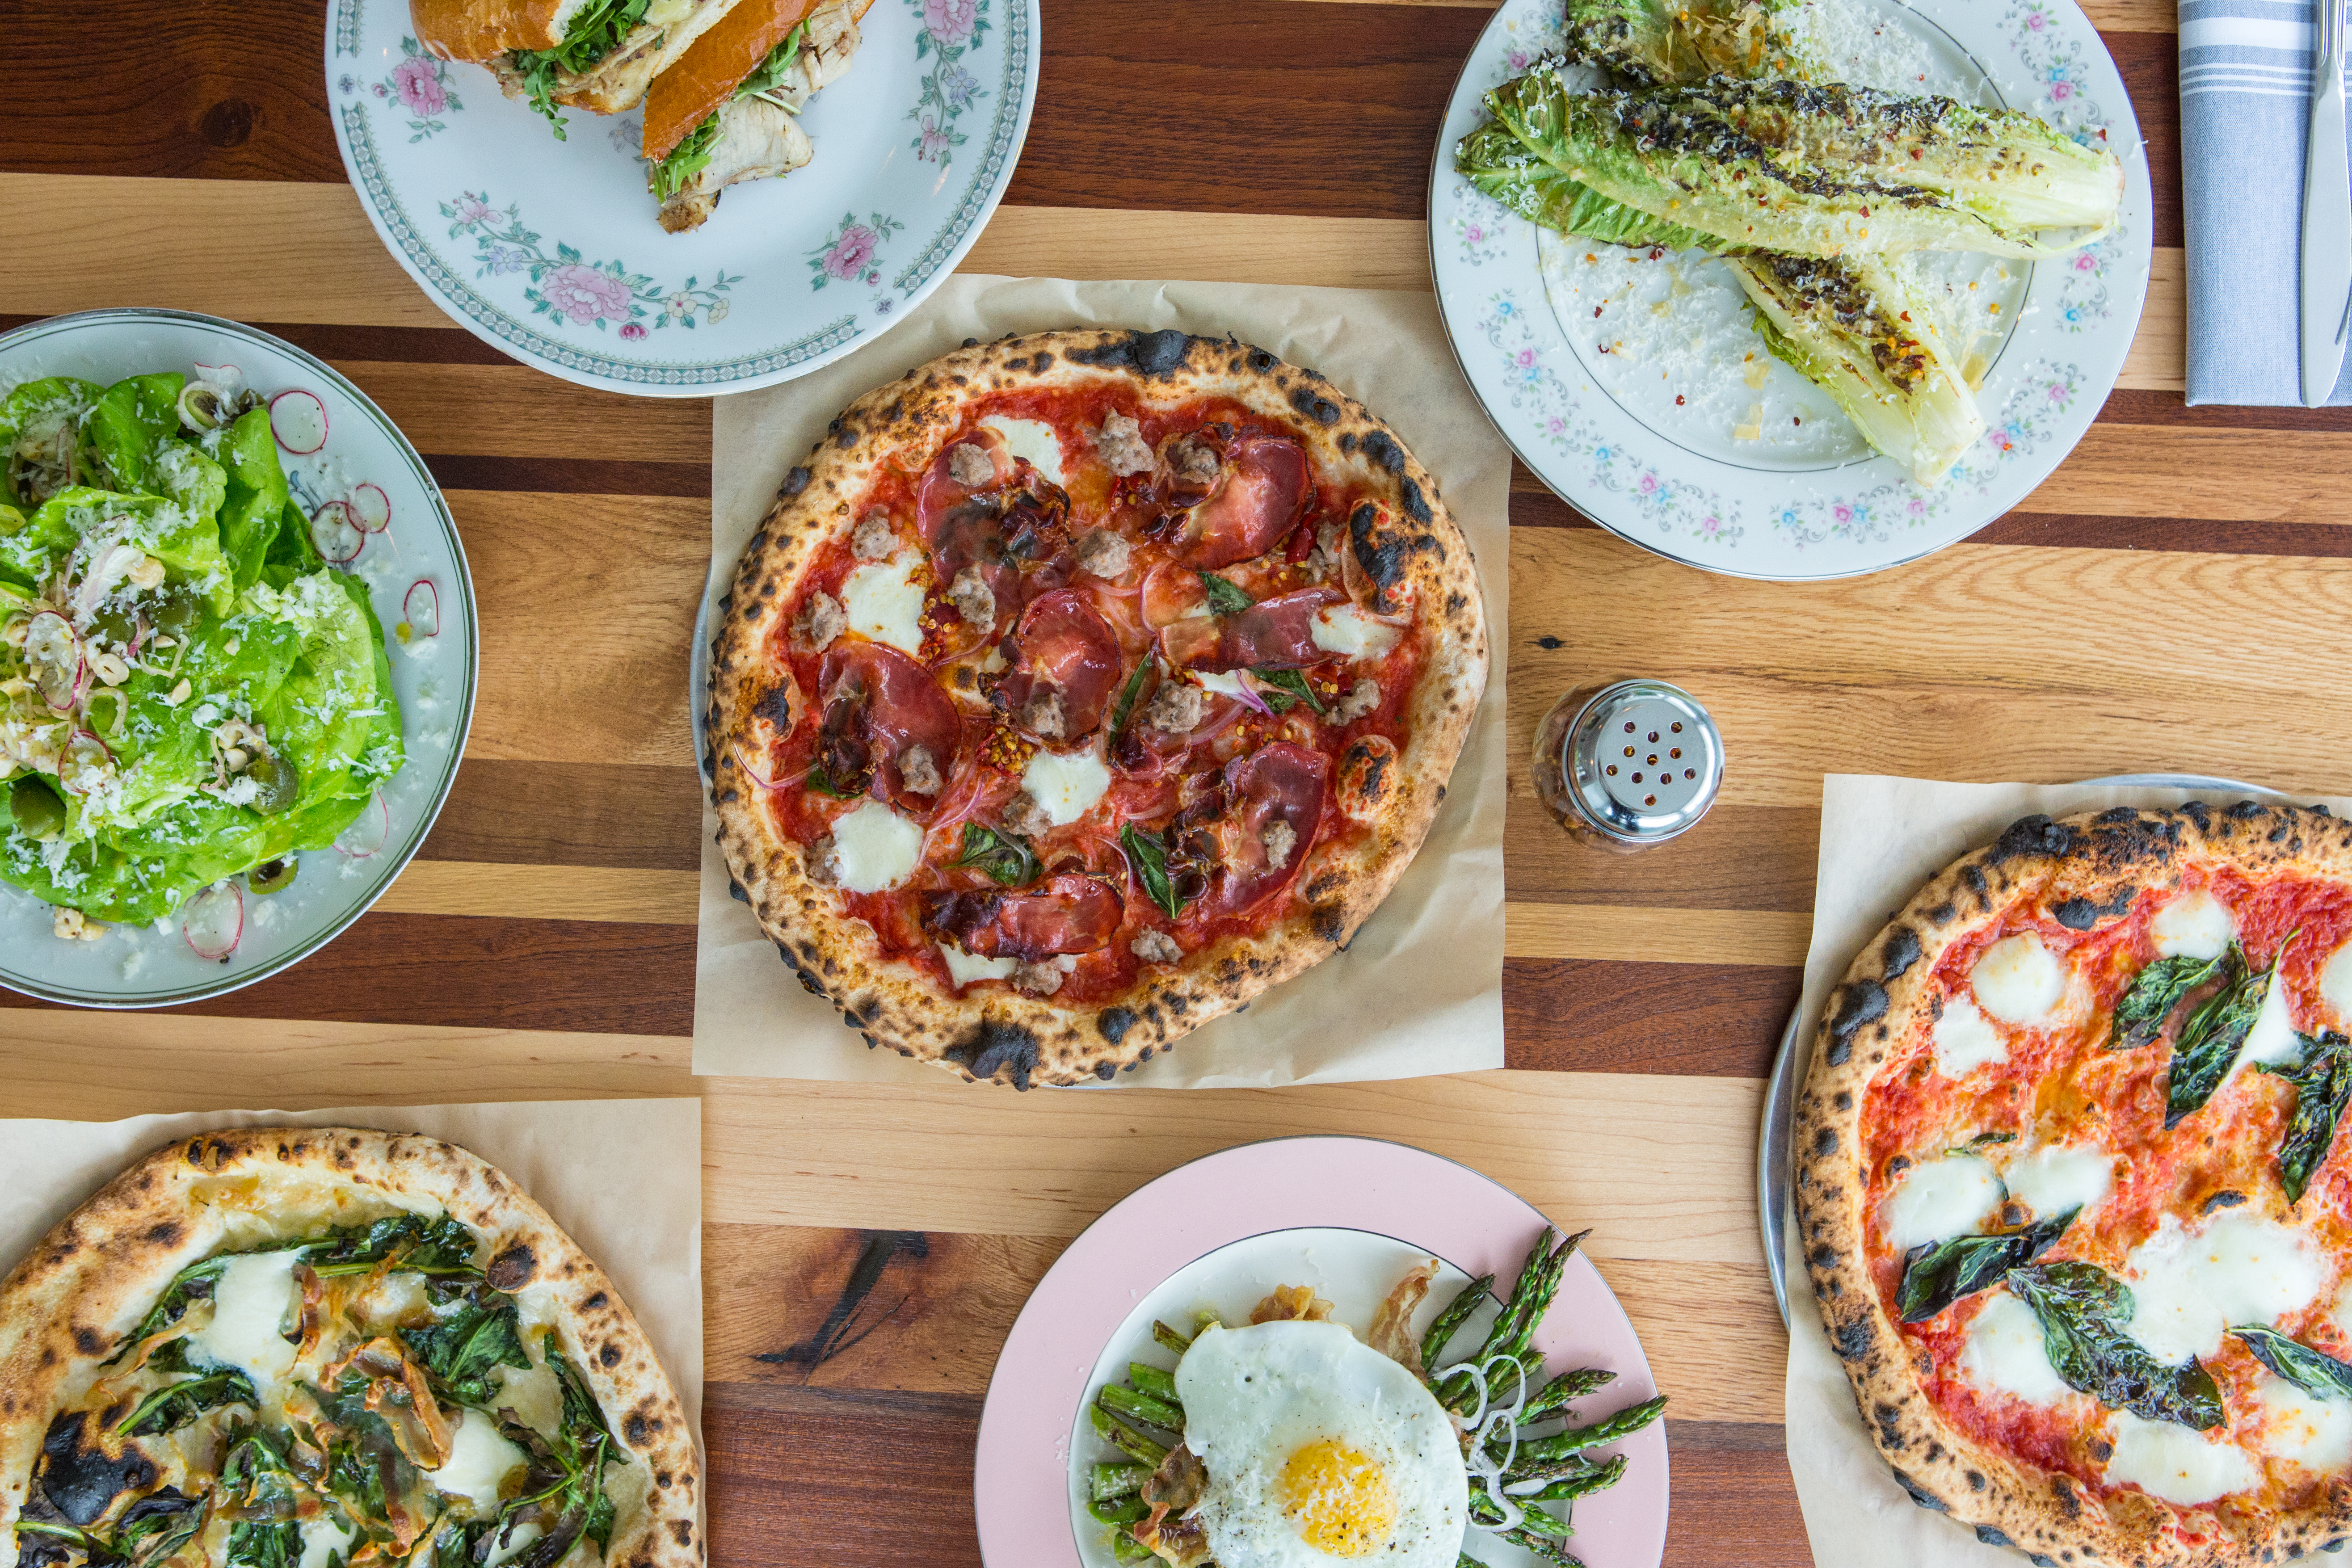 Pizza from 40 North